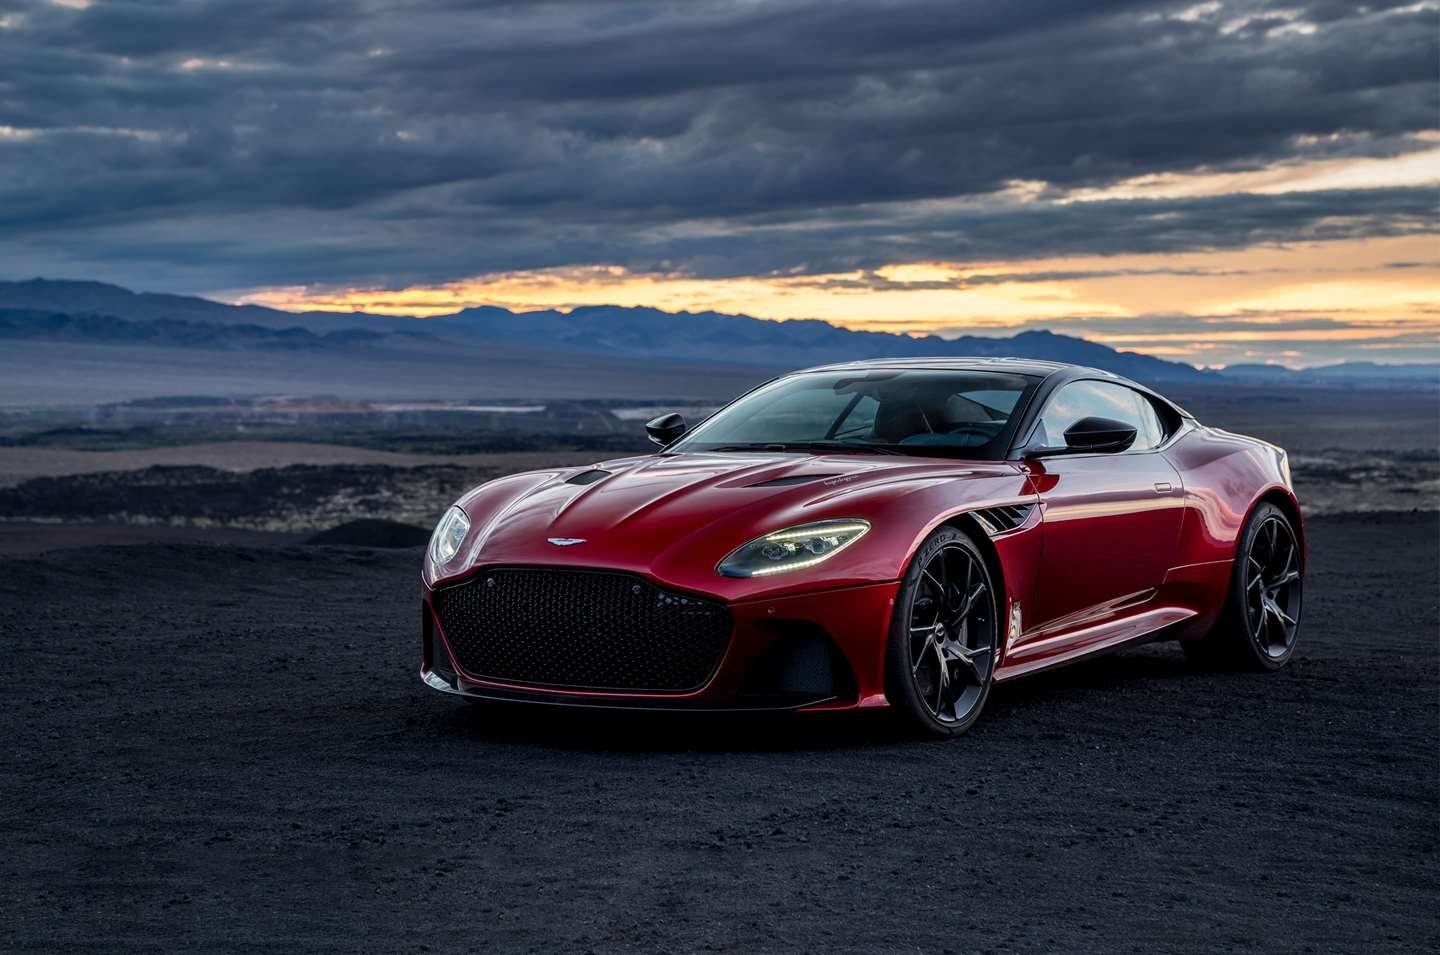 2018 Aston Martin Dbs Superleggera V12 Price In Uae Specs